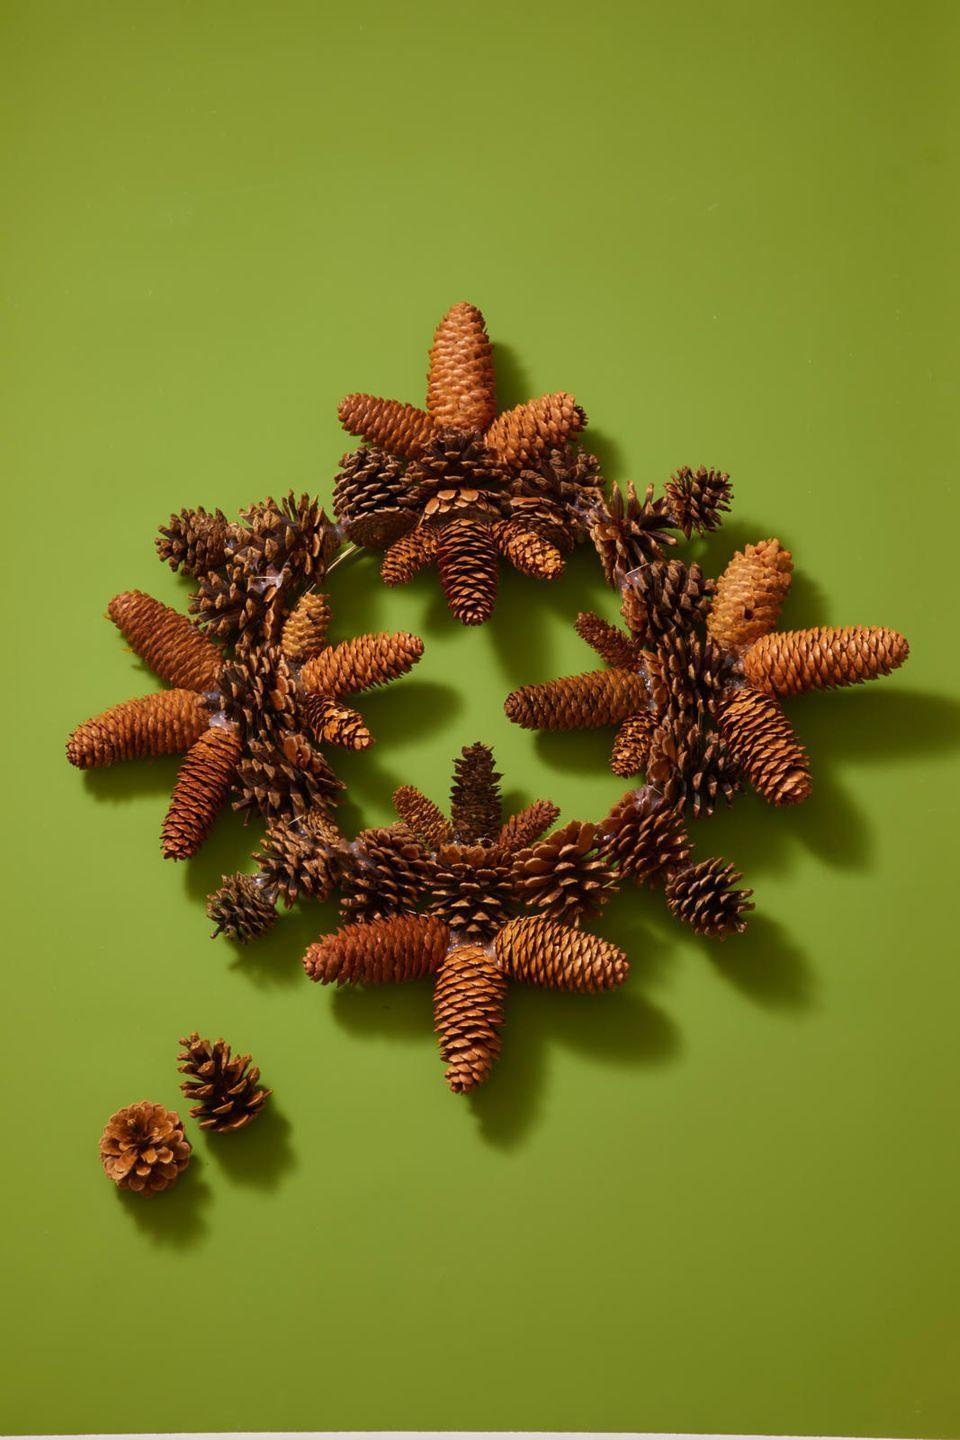 """<p>Bring a little bit of the outdoors to your front door. Start by laying out the pinecones in the shape that you want. Then, hot glue all of the pinecones to a <a href=""""https://www.amazon.com/Darice-170150-Floral-Metal-Wreath/dp/B0054G5JQK?tag=syn-yahoo-20&ascsubtag=%5Bartid%7C10055.g.2996%5Bsrc%7Cyahoo-us"""" rel=""""nofollow noopener"""" target=""""_blank"""" data-ylk=""""slk:wire wreath form"""" class=""""link rapid-noclick-resp"""">wire wreath form</a>, starting with the main circle. Continue to glue the pinecones into five-pointed-star shapes. You may need to use a little wire and extra hot glue to secure a few pinecone tips that are hard to line up. </p>"""